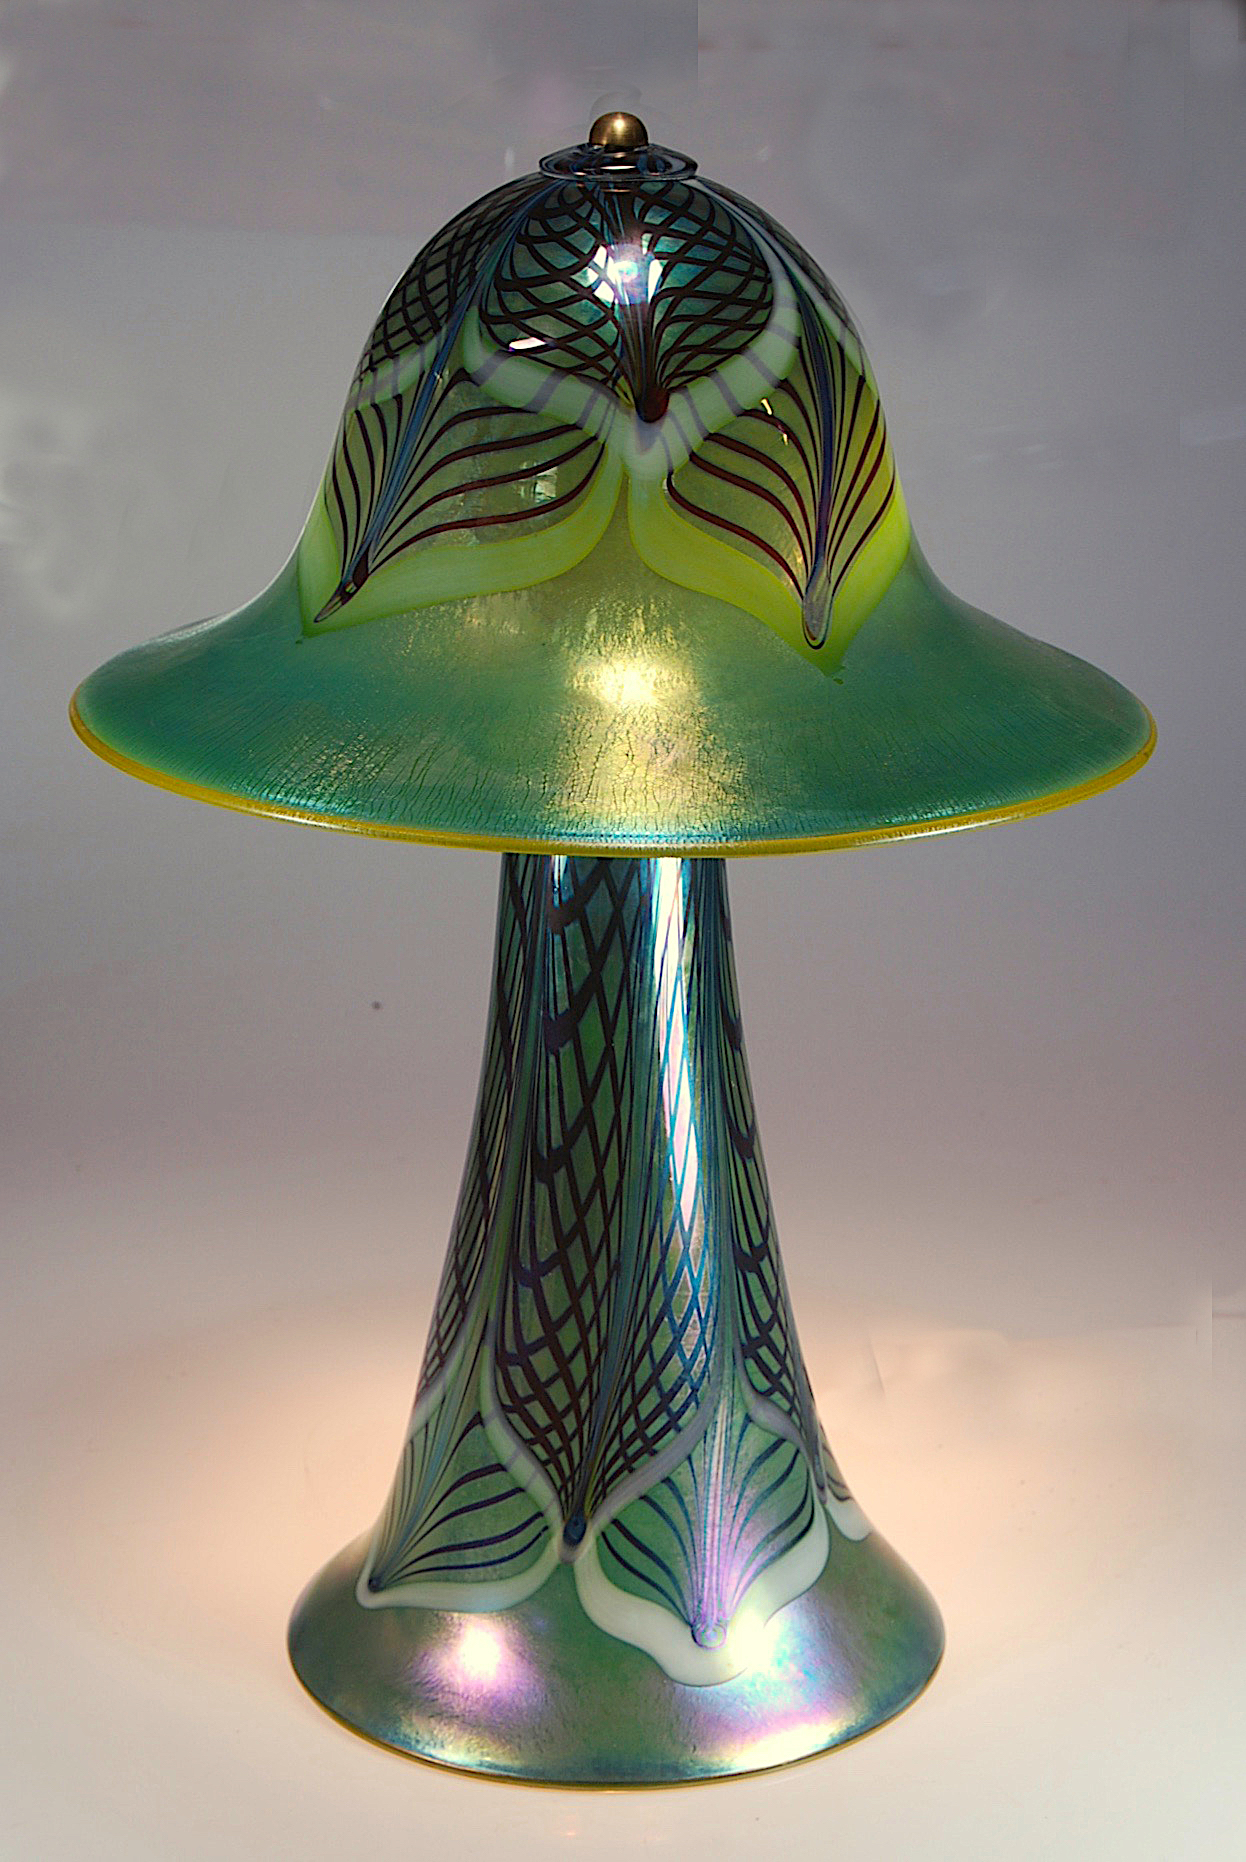 Moss Luster,  Double Decorated lace pattern,  Table Lamp  2018  rick strini